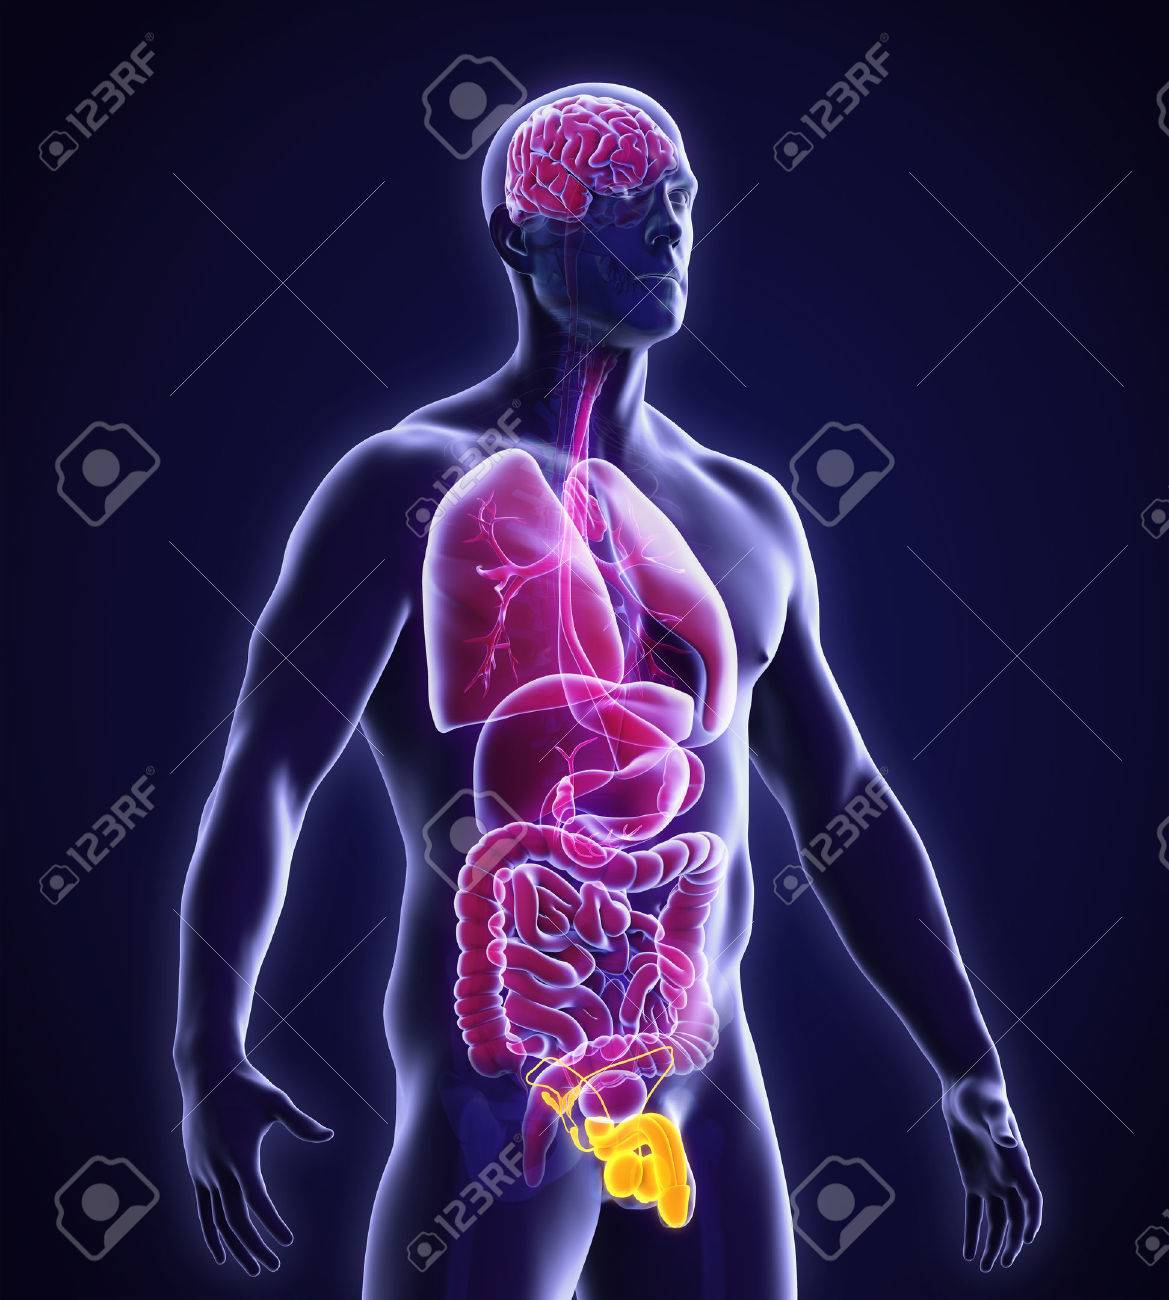 Male Reproductive System Anatomy Stock Photo, Picture And Royalty ...